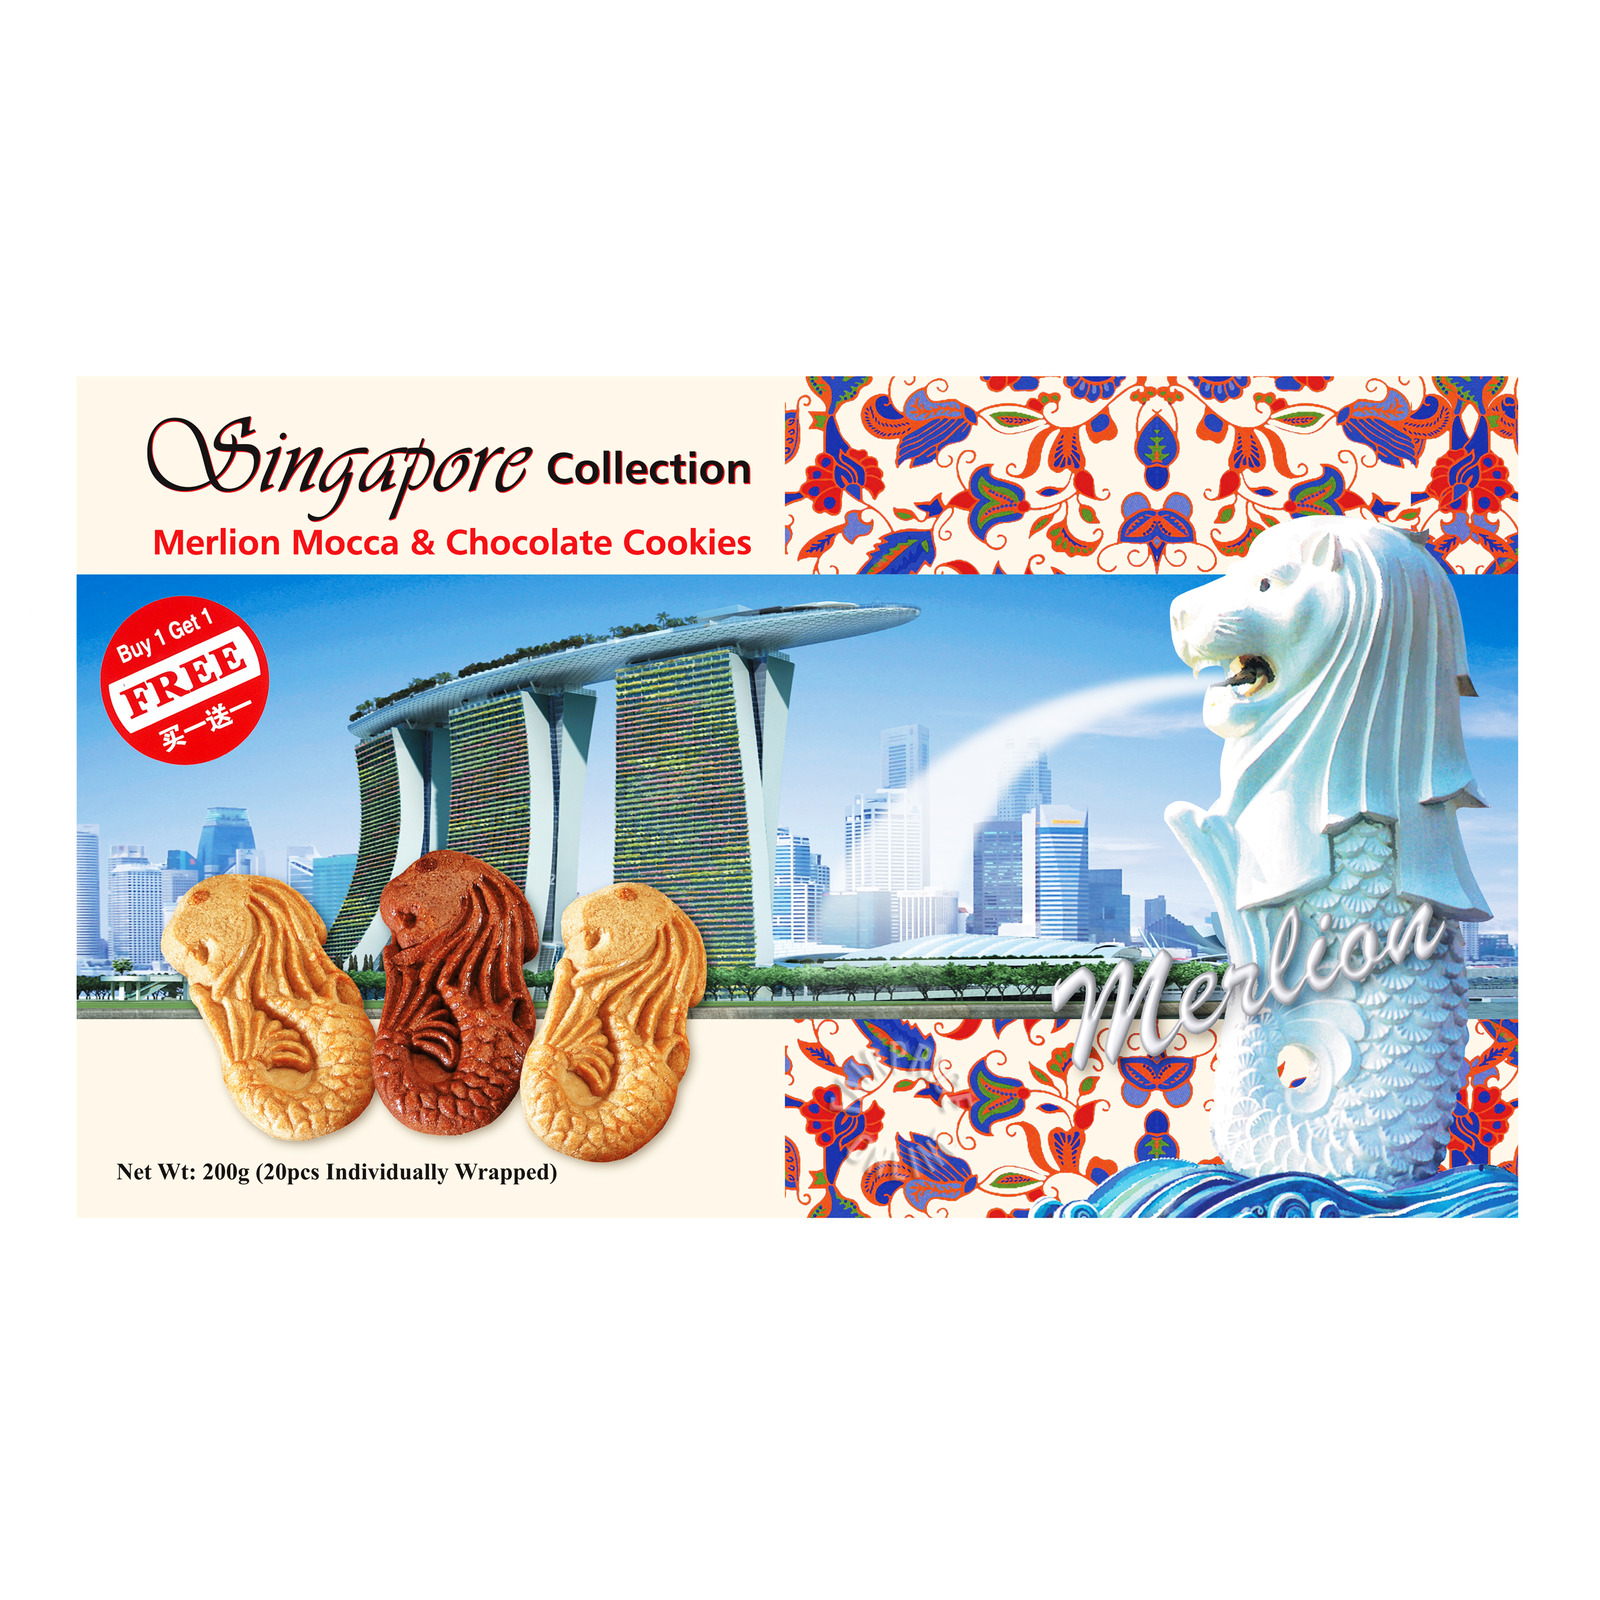 Manly Singapore Merlion Cookies - Mocca & Chocolate